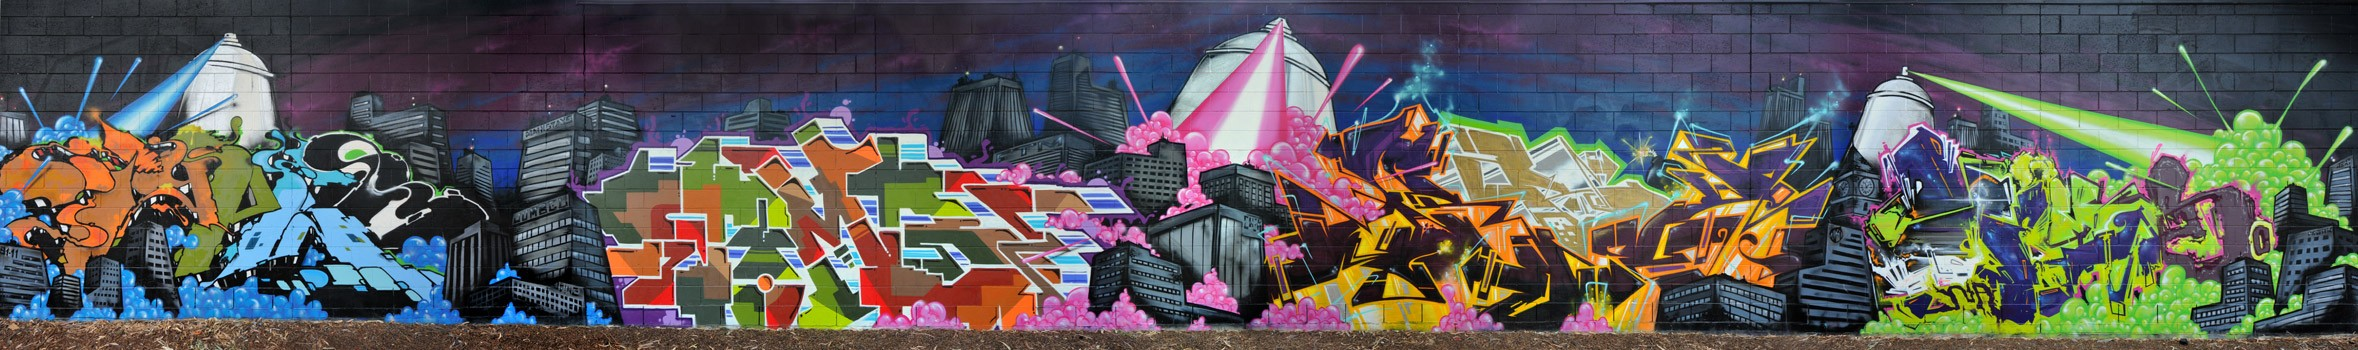 NA/MS Spray Can Invasion - Sturt Creek - Adelaide 2012